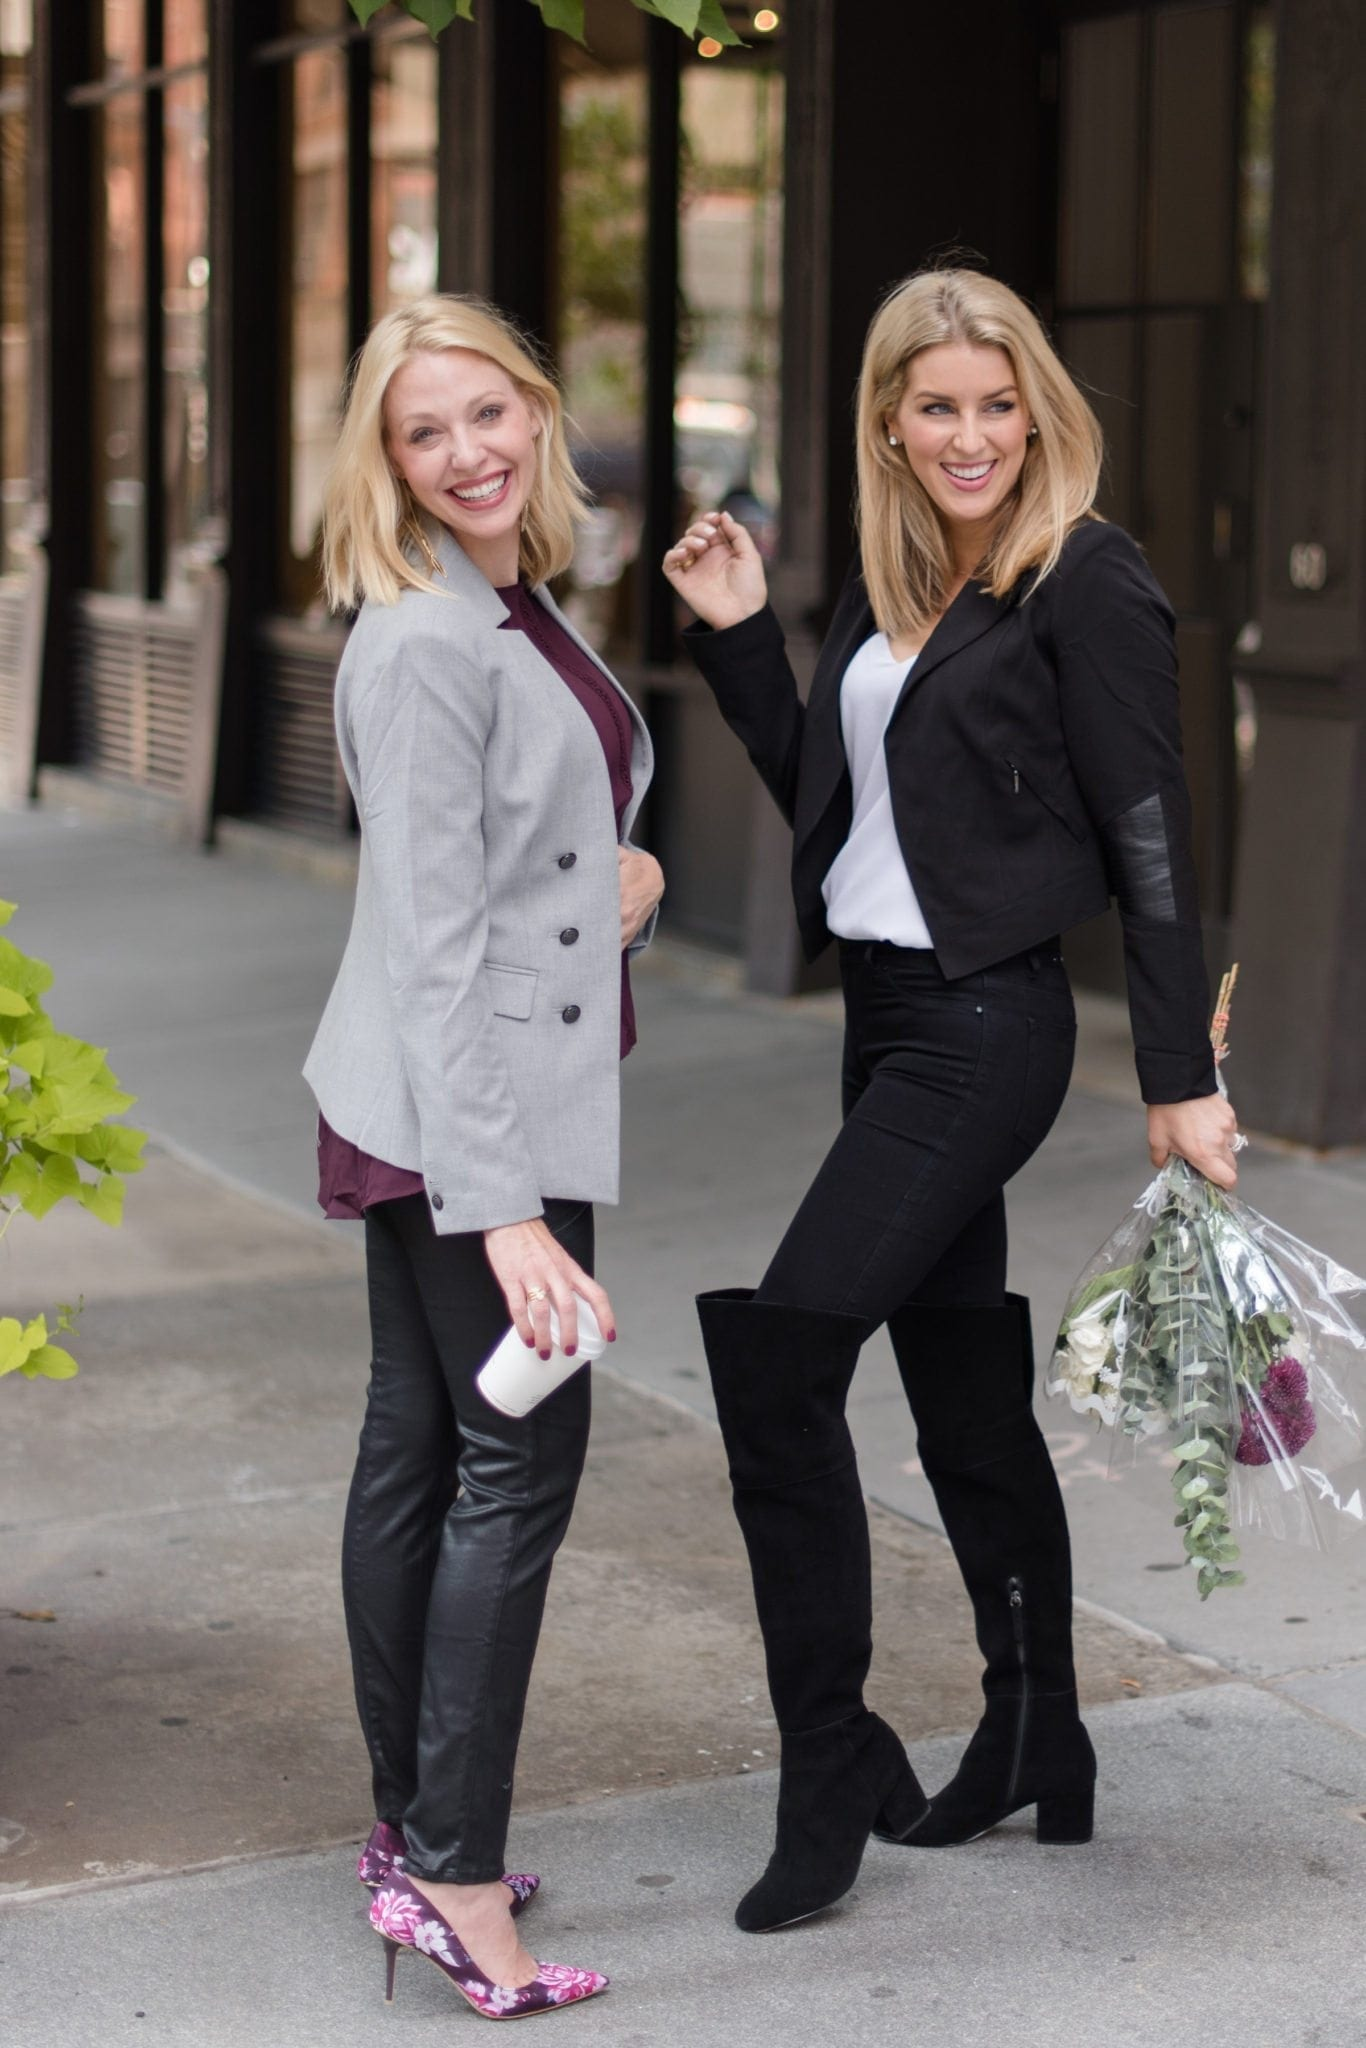 How to wear jackets. Gray notchless collar and black motorcycle jacket on Atlanta bloggers.